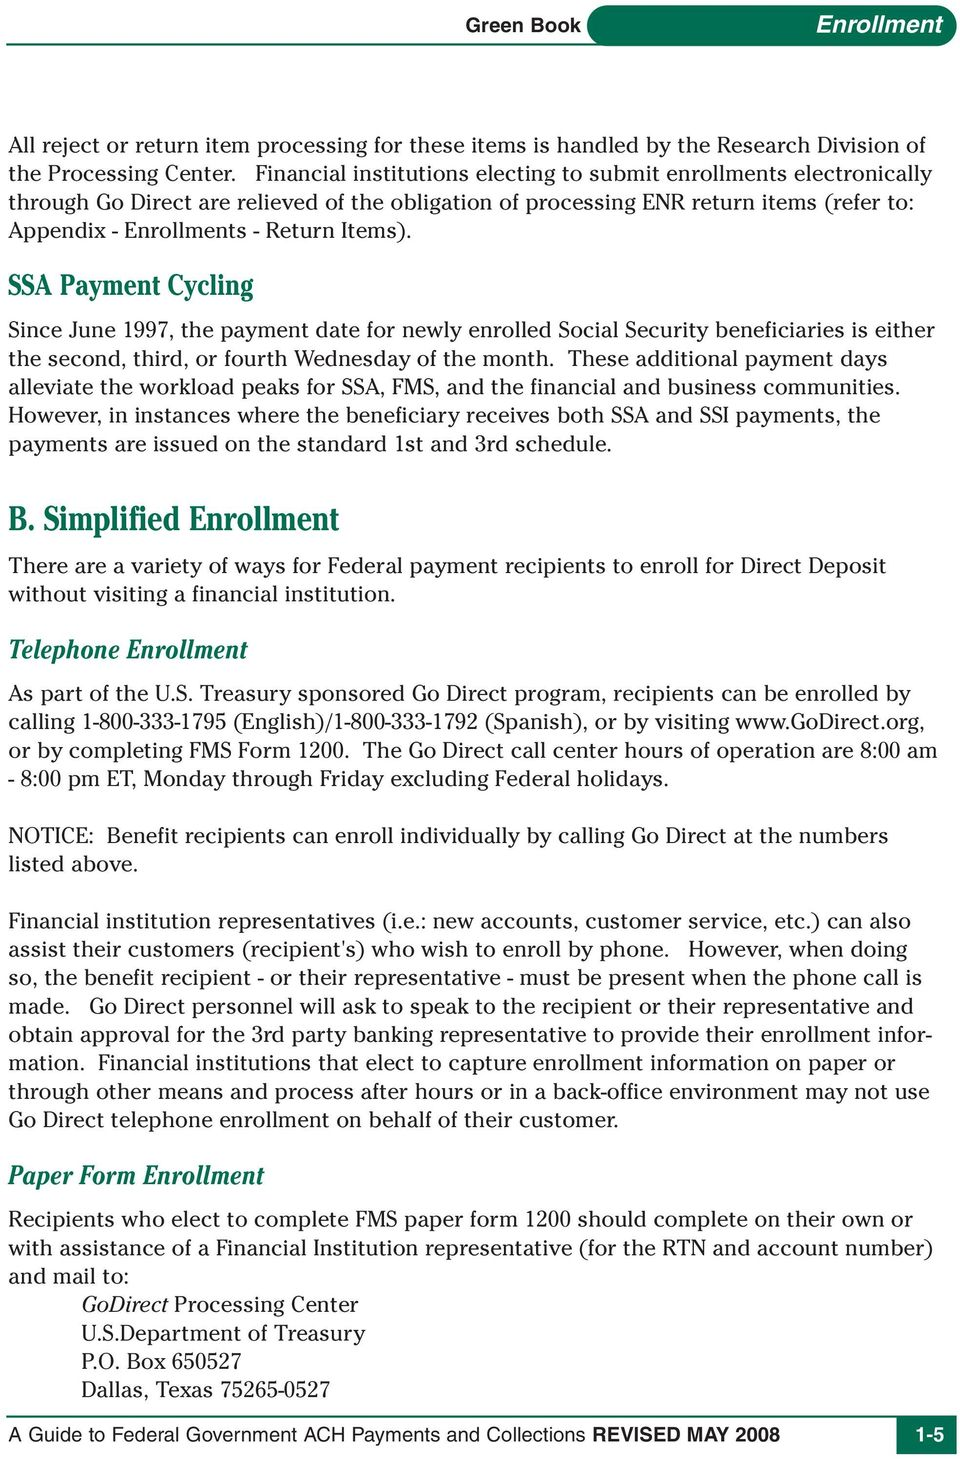 SSA Payment Cycling Since June 1997, the payment date for newly enrolled Social Security beneficiaries is either the second, third, or fourth Wednesday of the month.